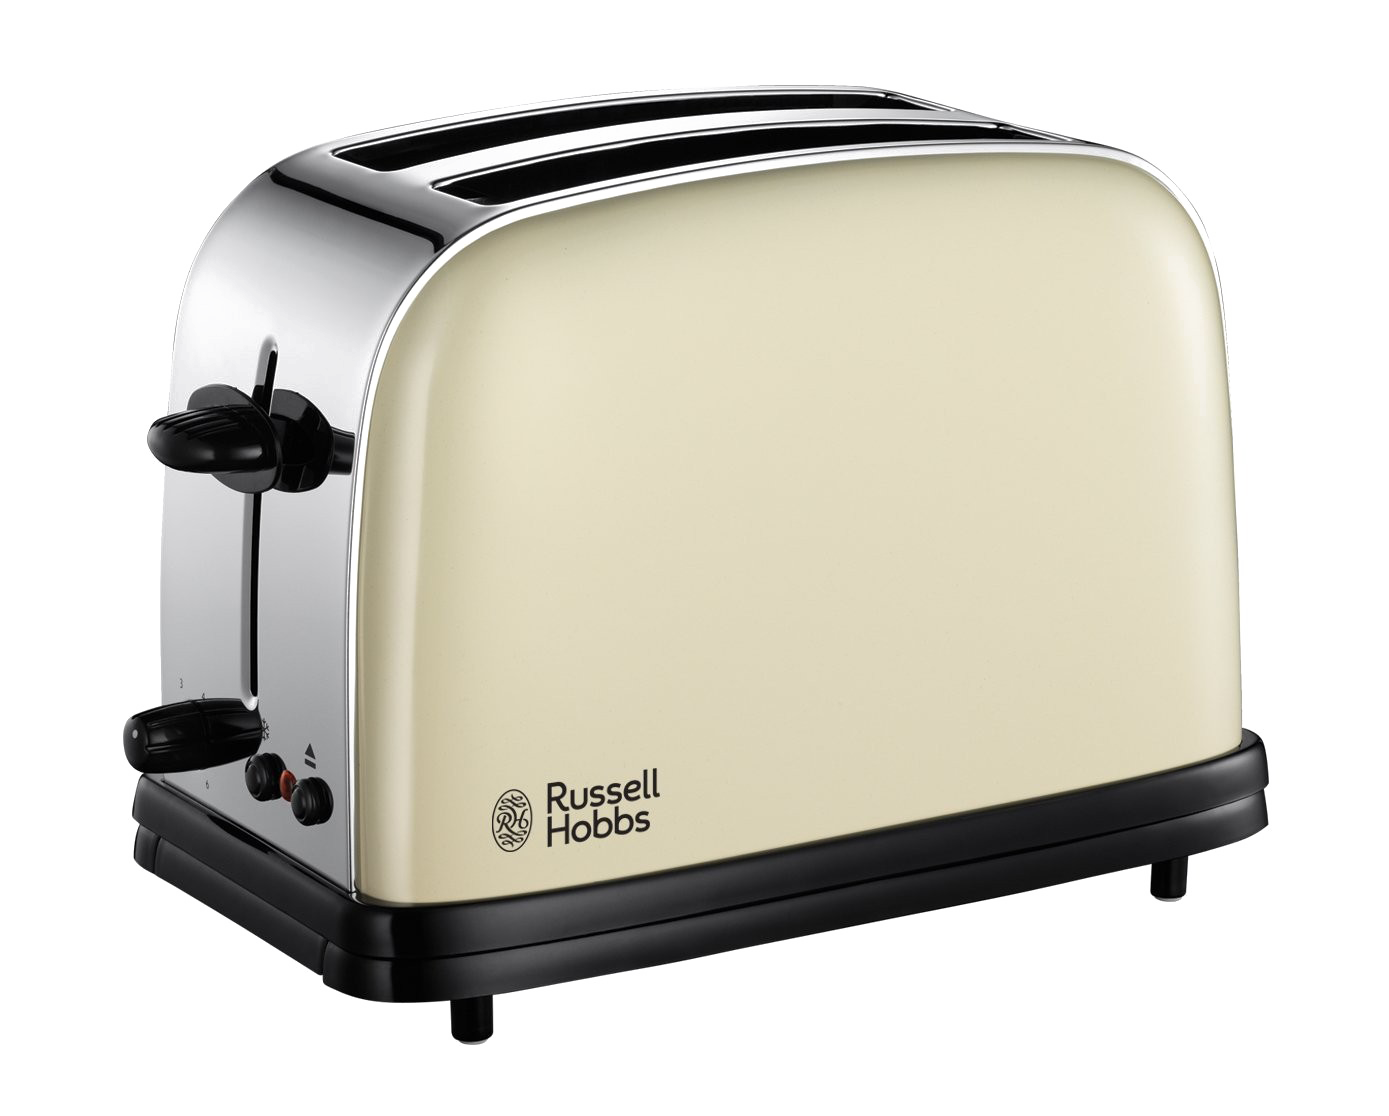 Toaster clipart transparent background. Png images free download